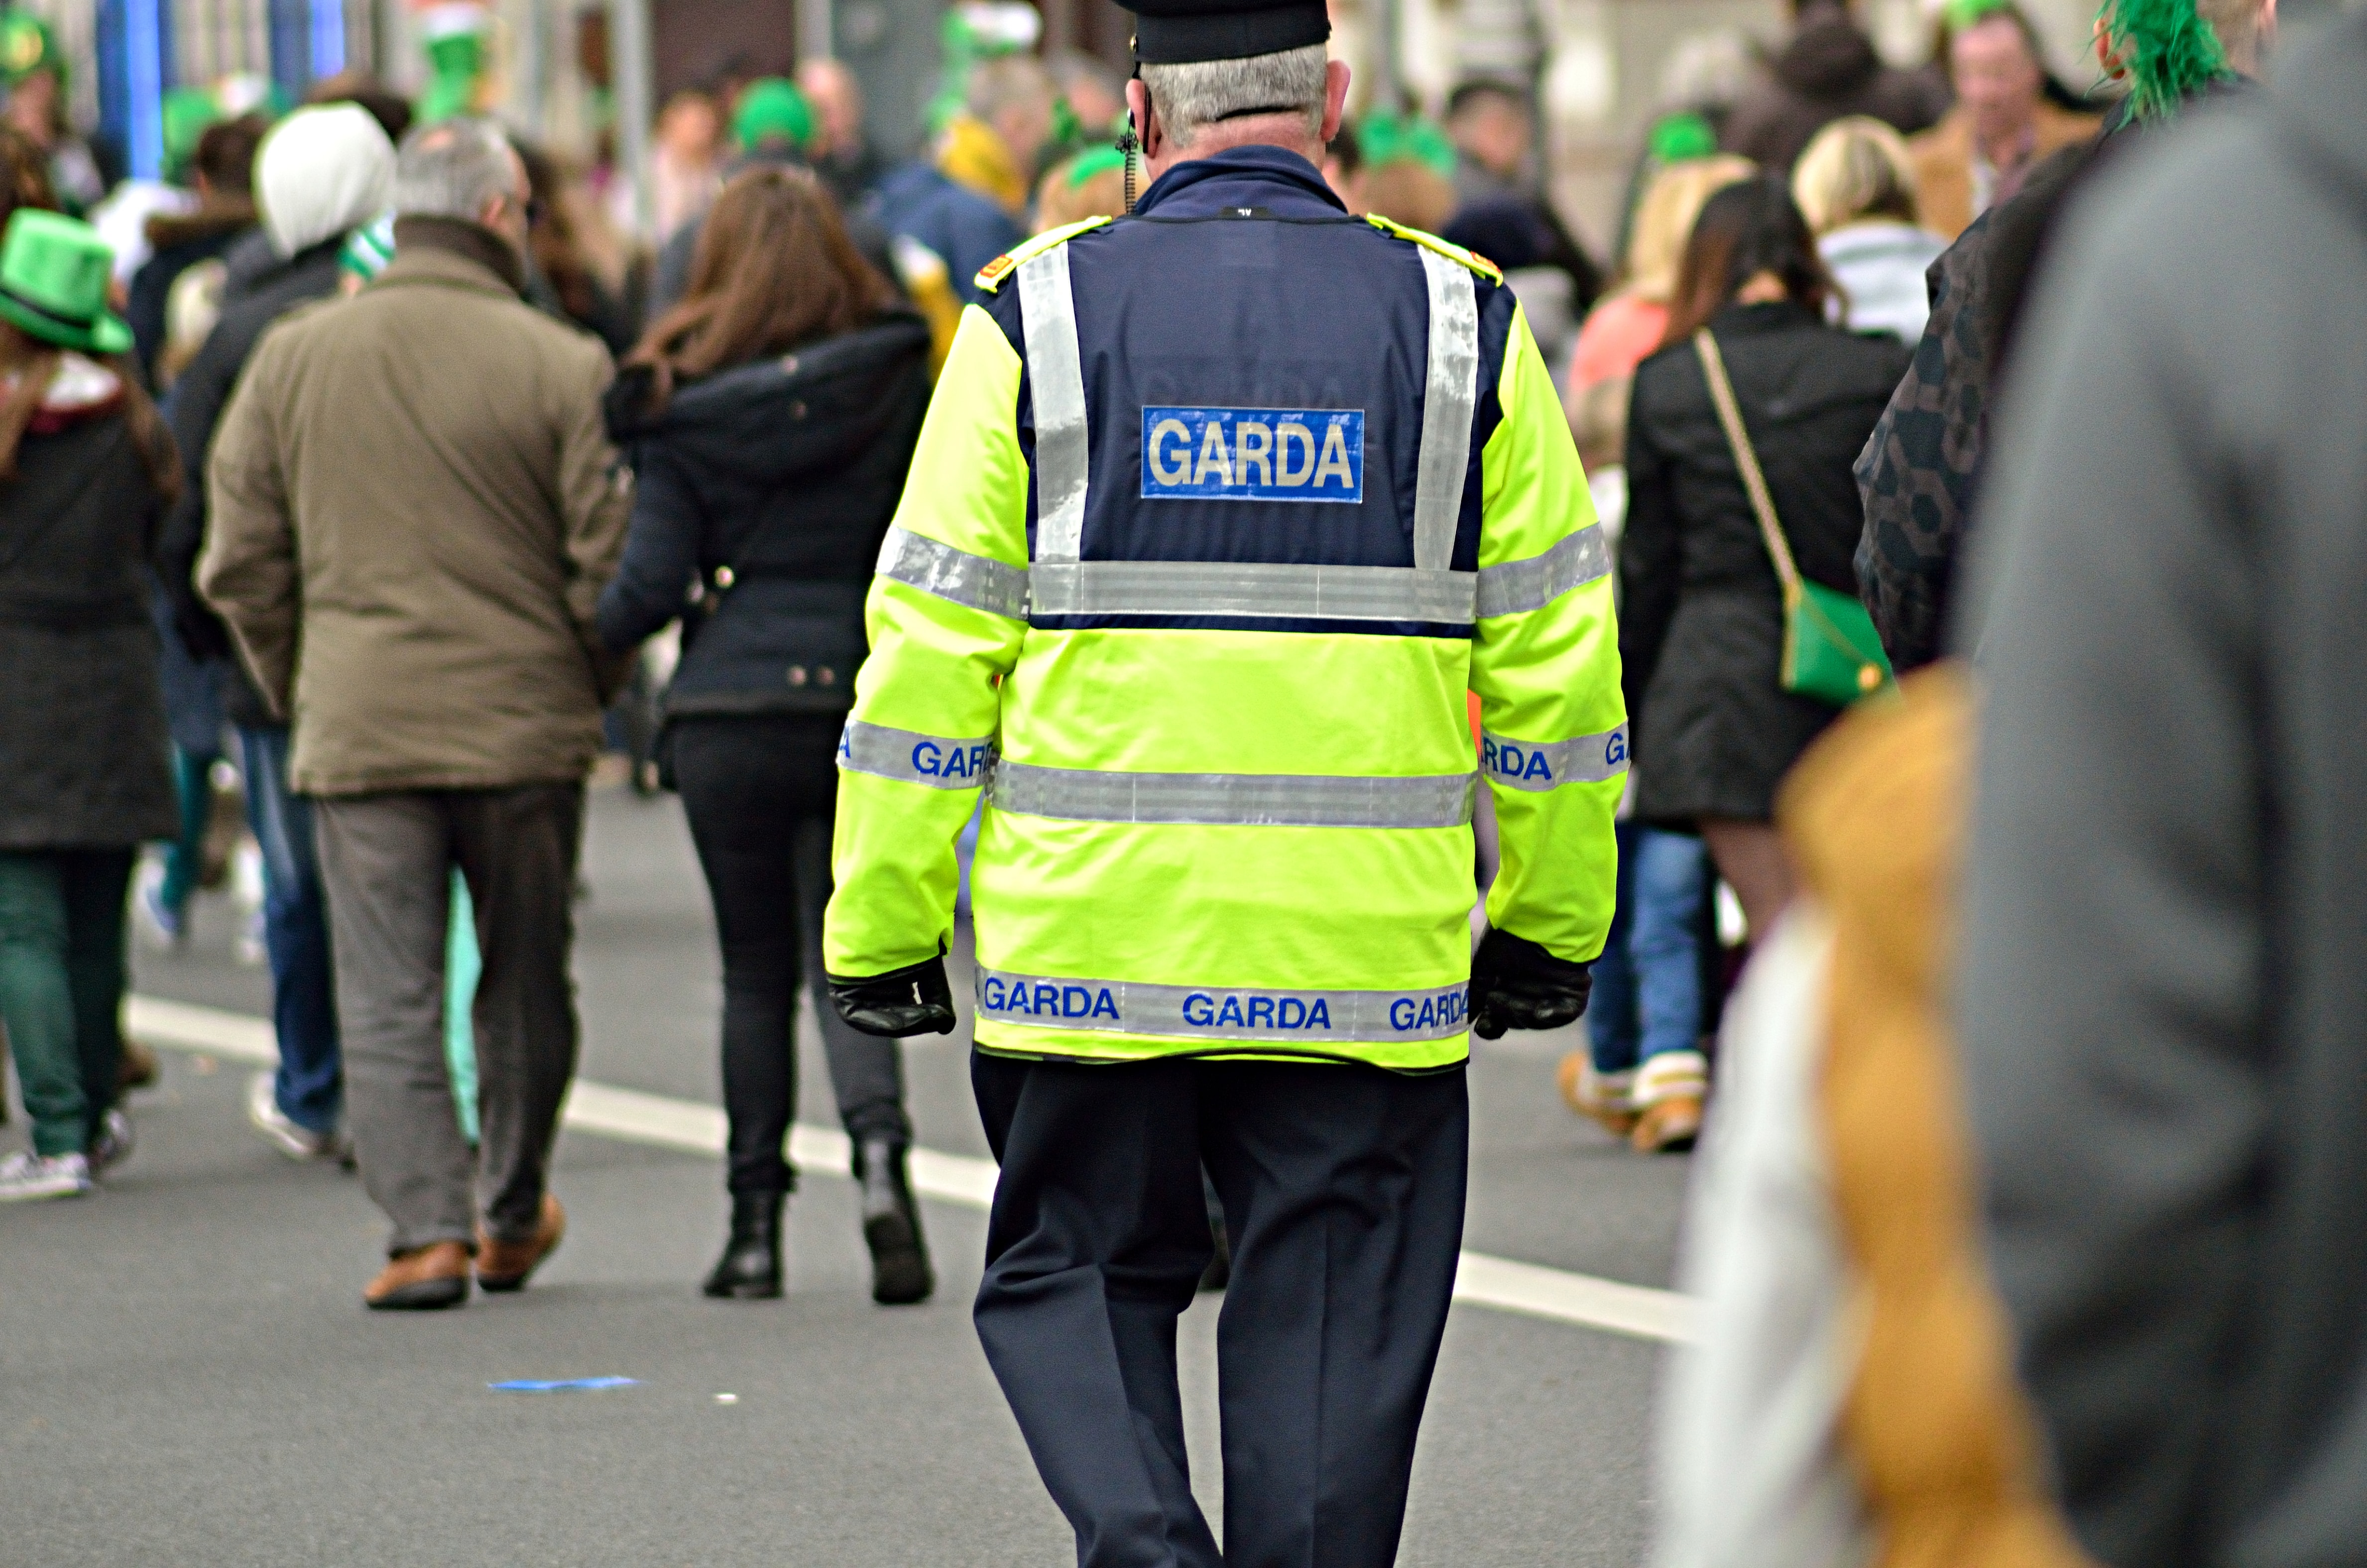 man wearing green and black police suit